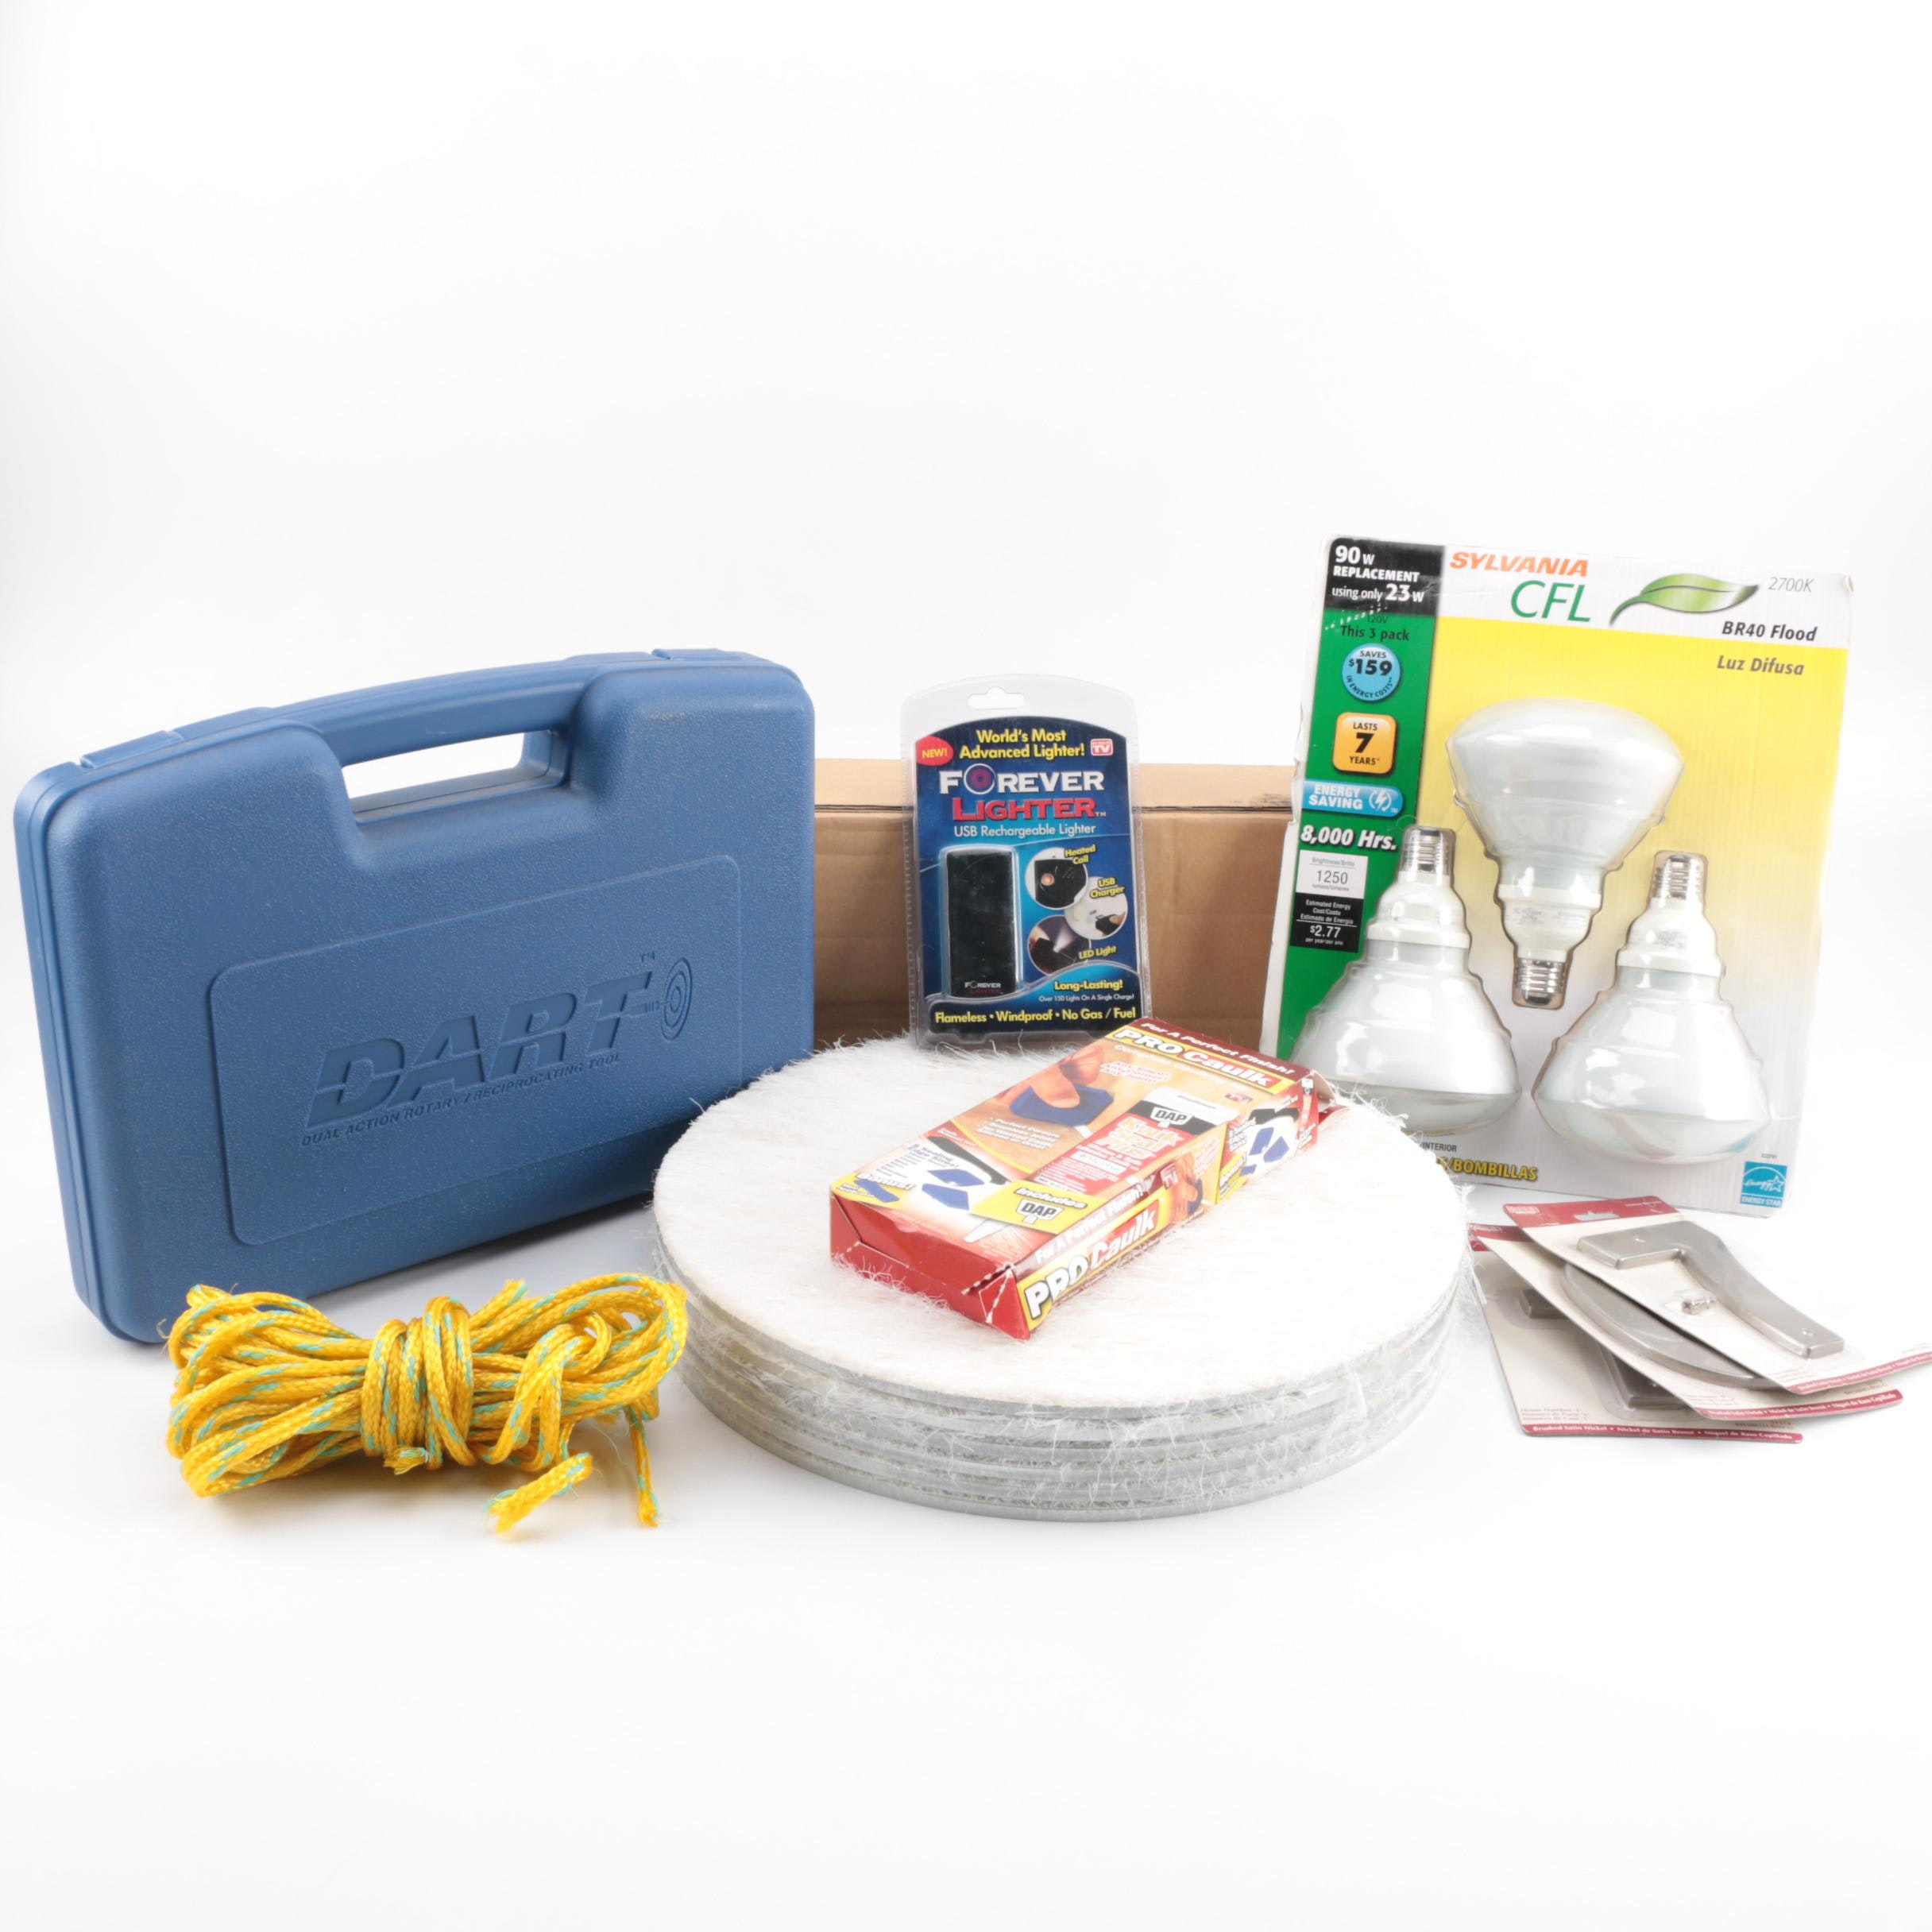 Assorted Home Maintenance Items